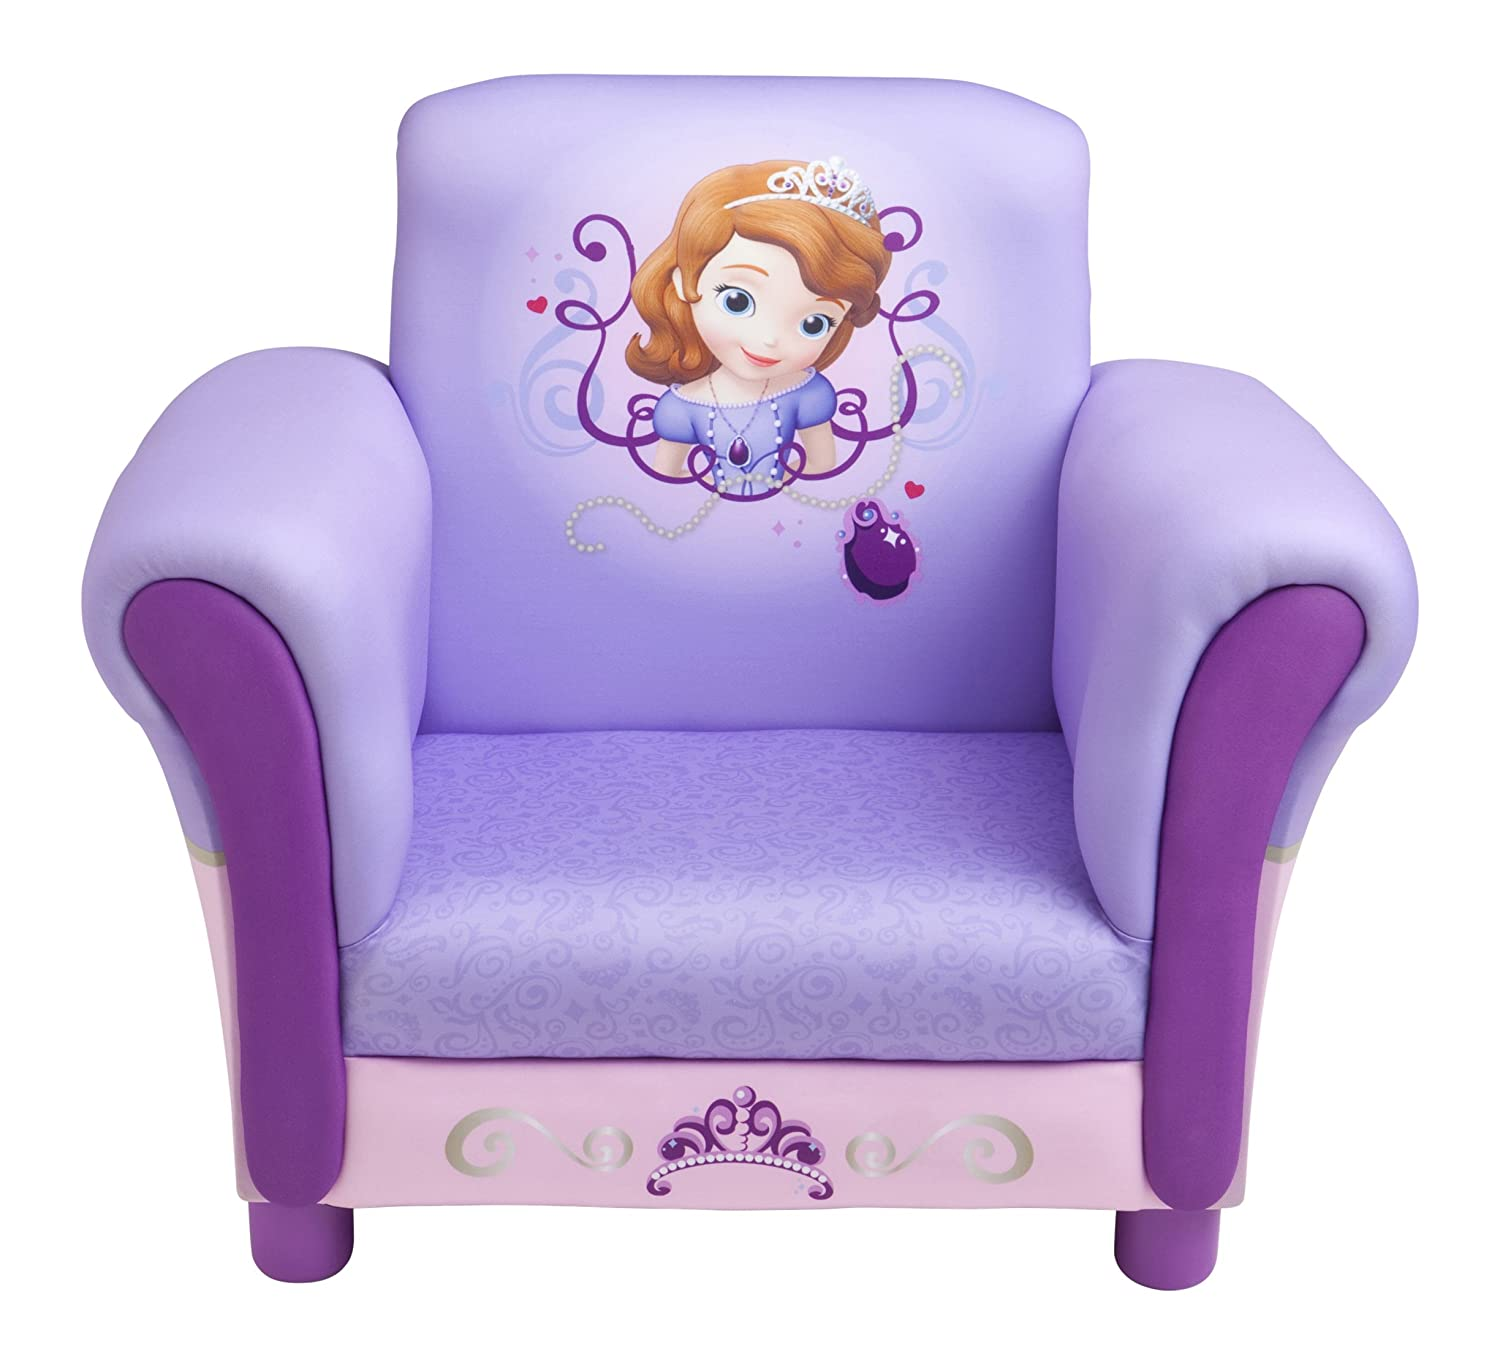 Amazon.com: Disney Sofia The First Upholstered Chair By Delta: Kitchen U0026  Dining